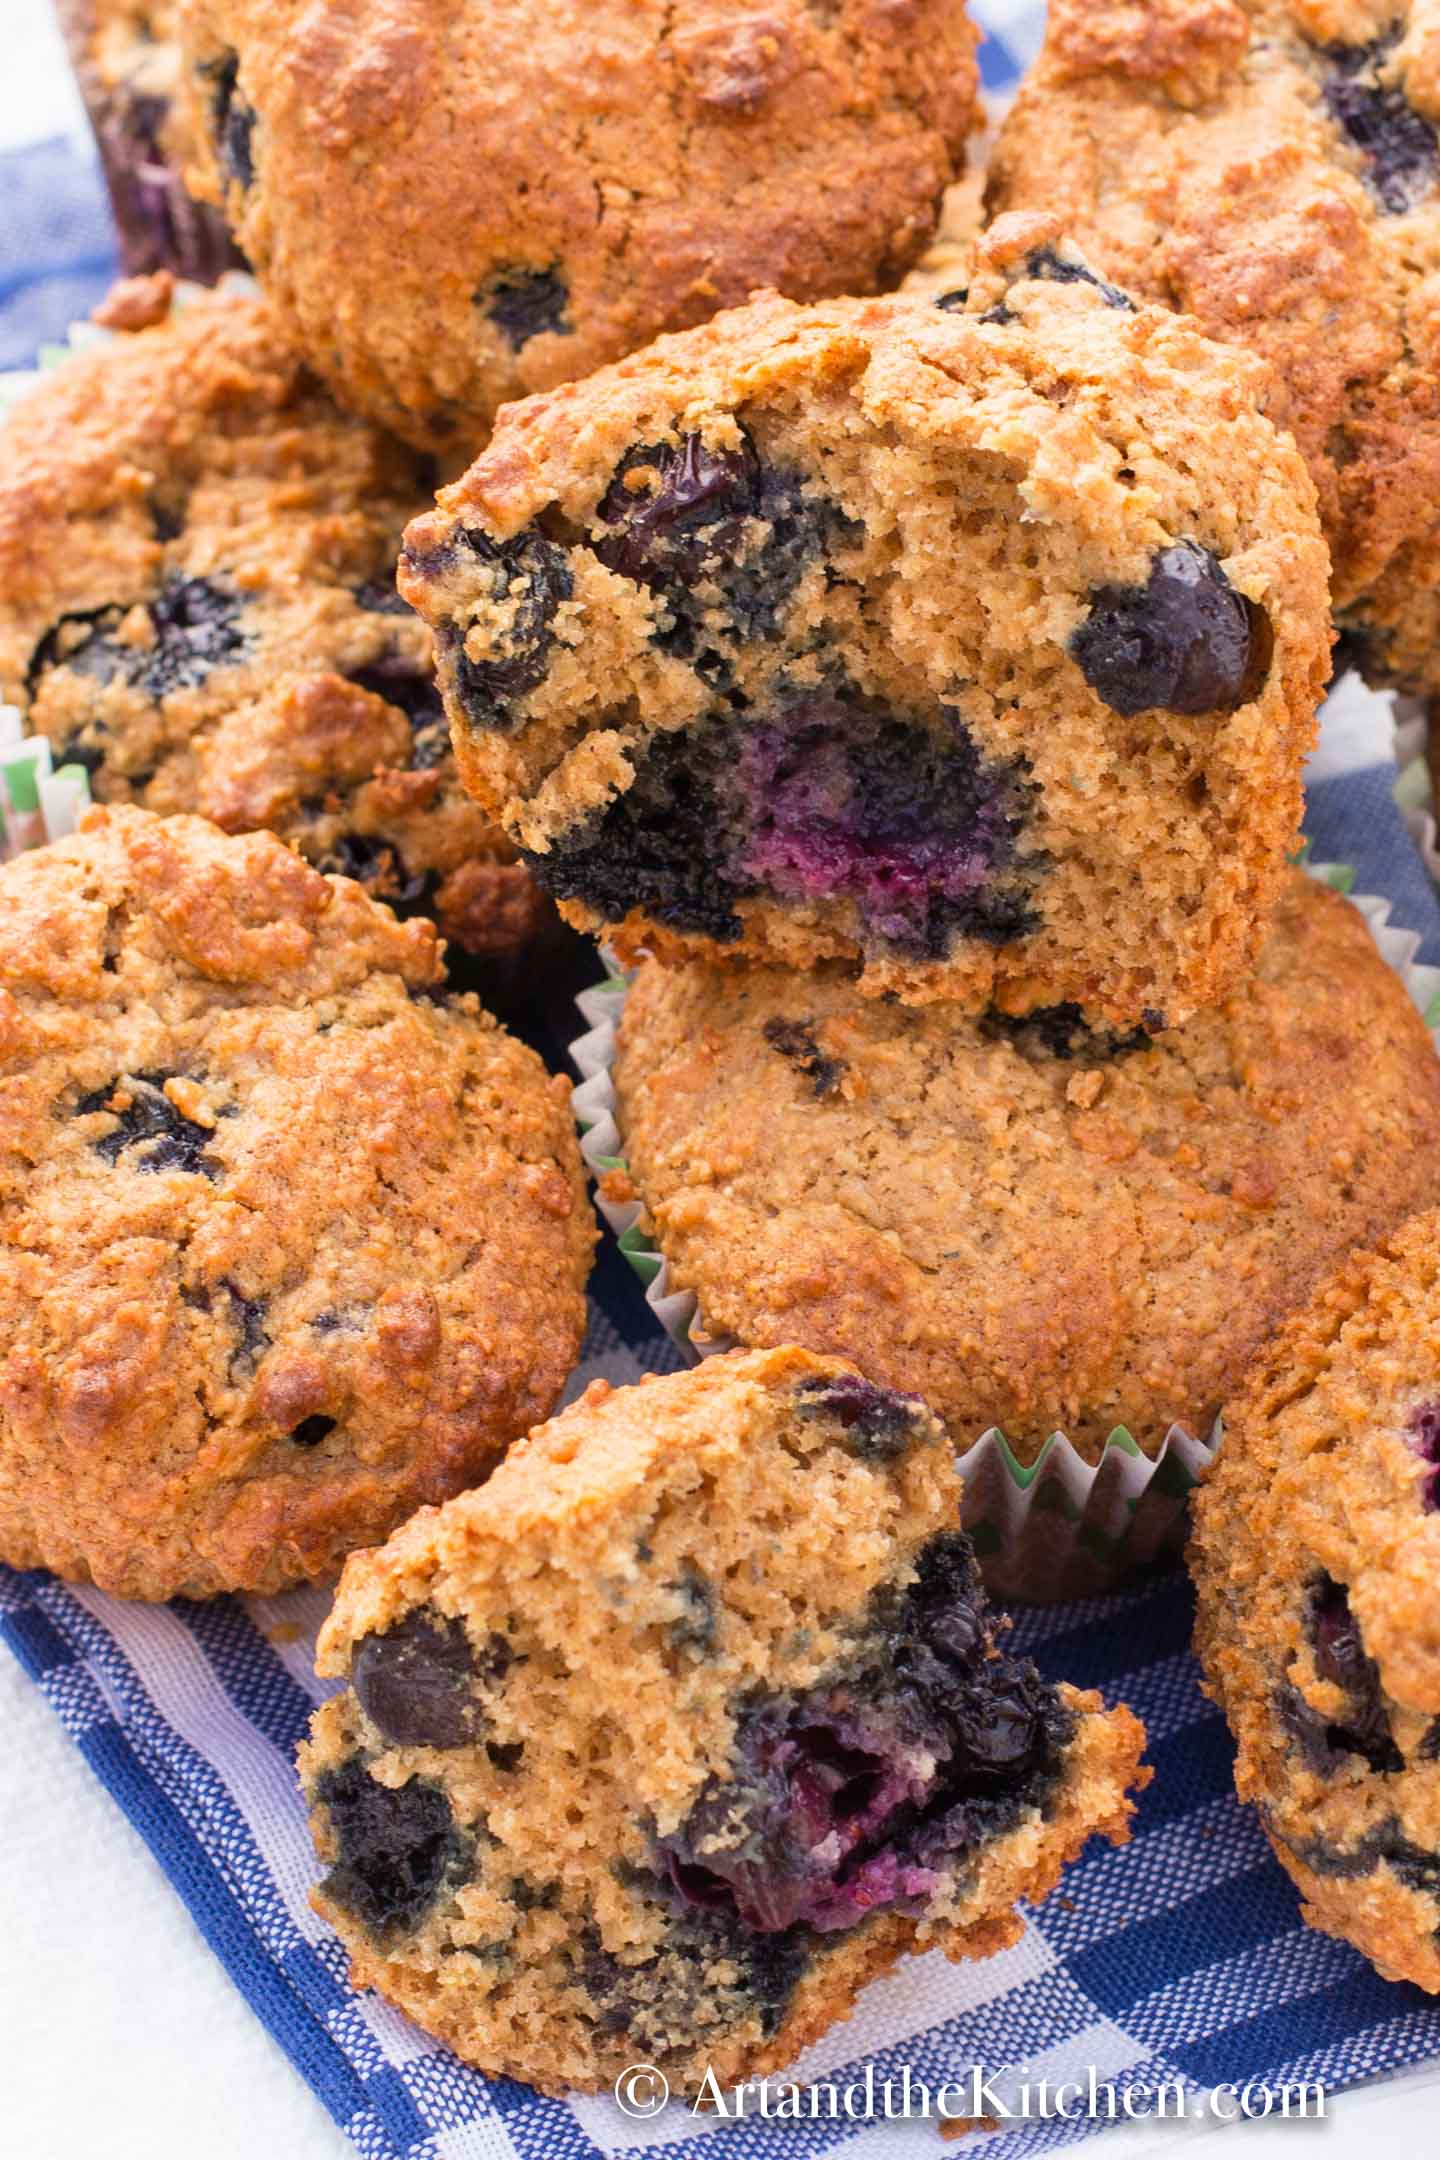 Bran muffins loaded with blueberries on gingham tablecloth.